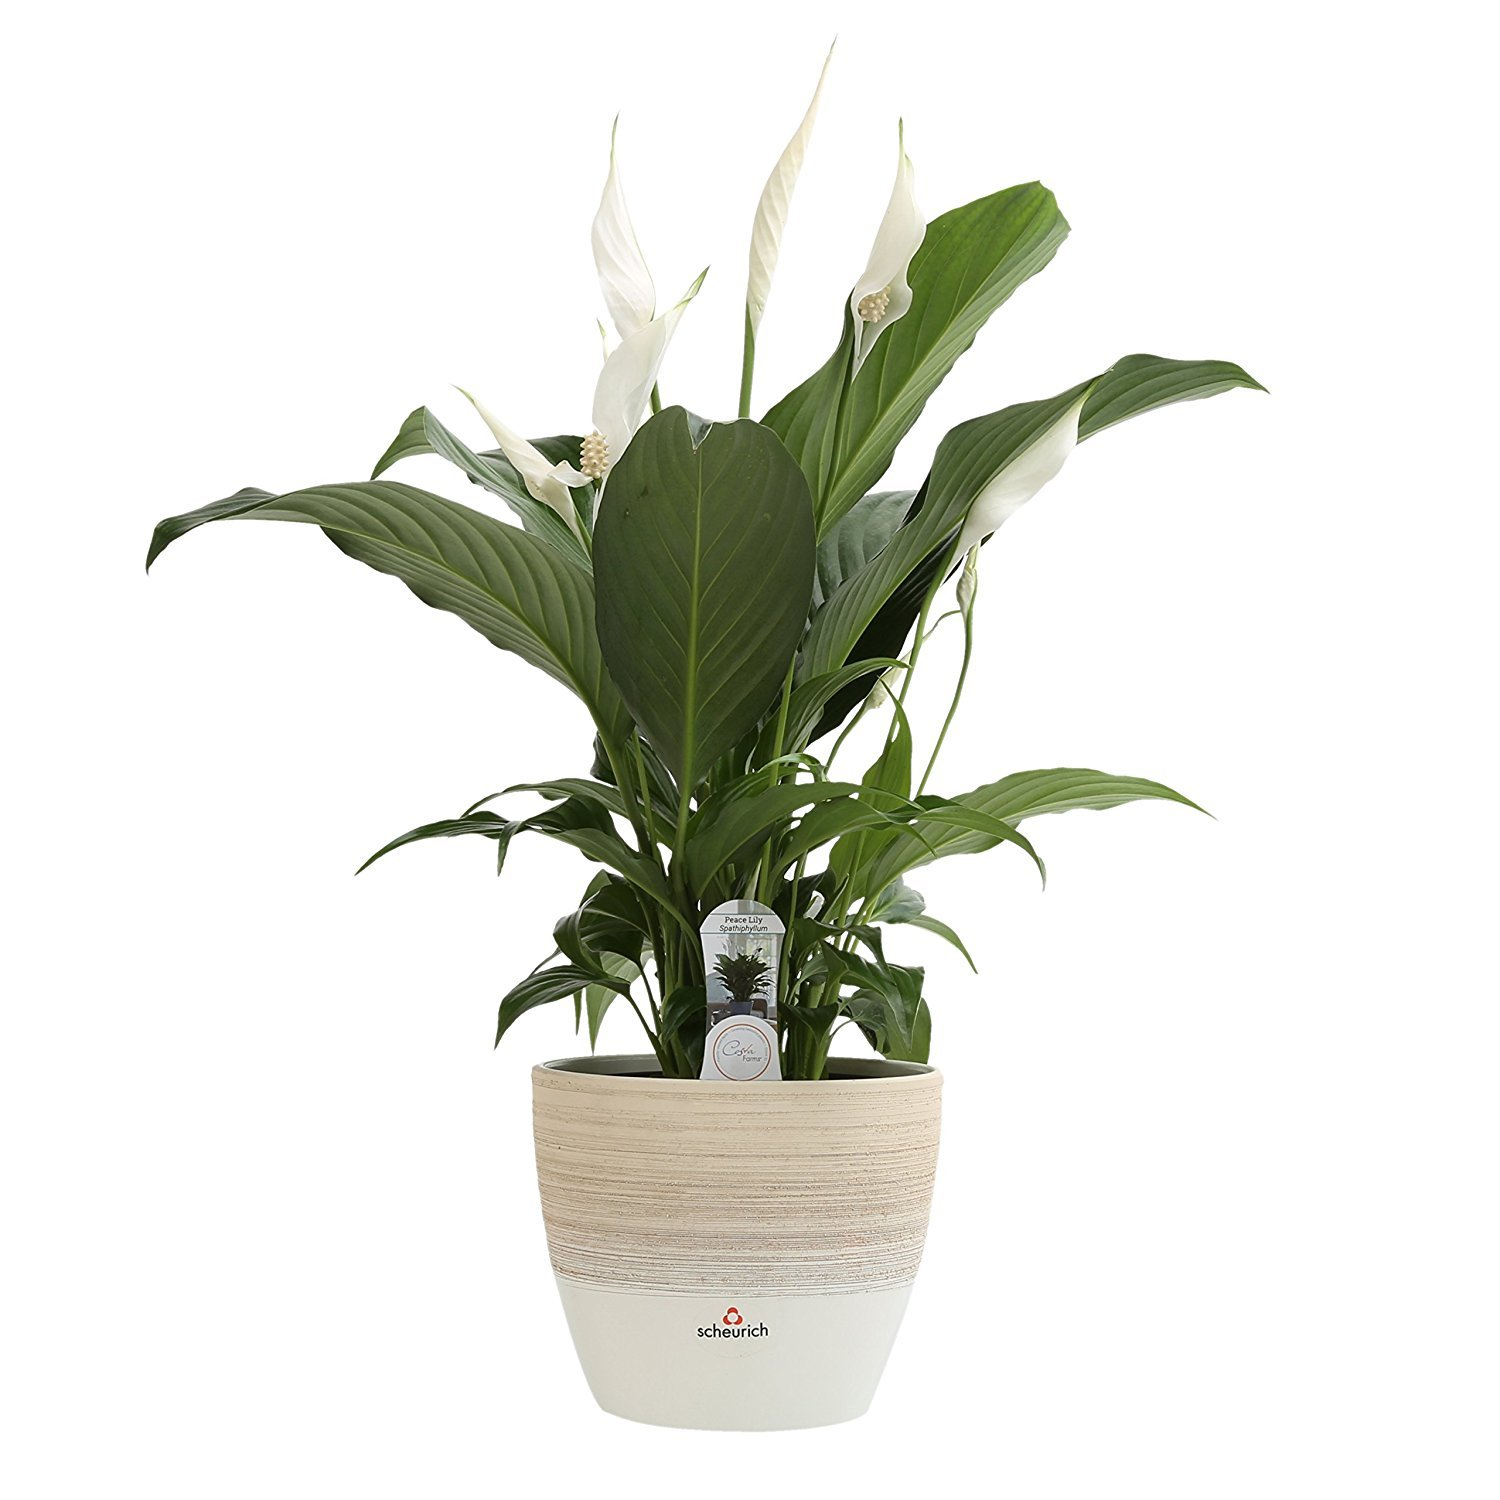 Costa Farms Live Indoor Flowering Peace Lily in Scheurich Premium Décor-Ready Ceramic Planter, Great Gift by Costa Farms